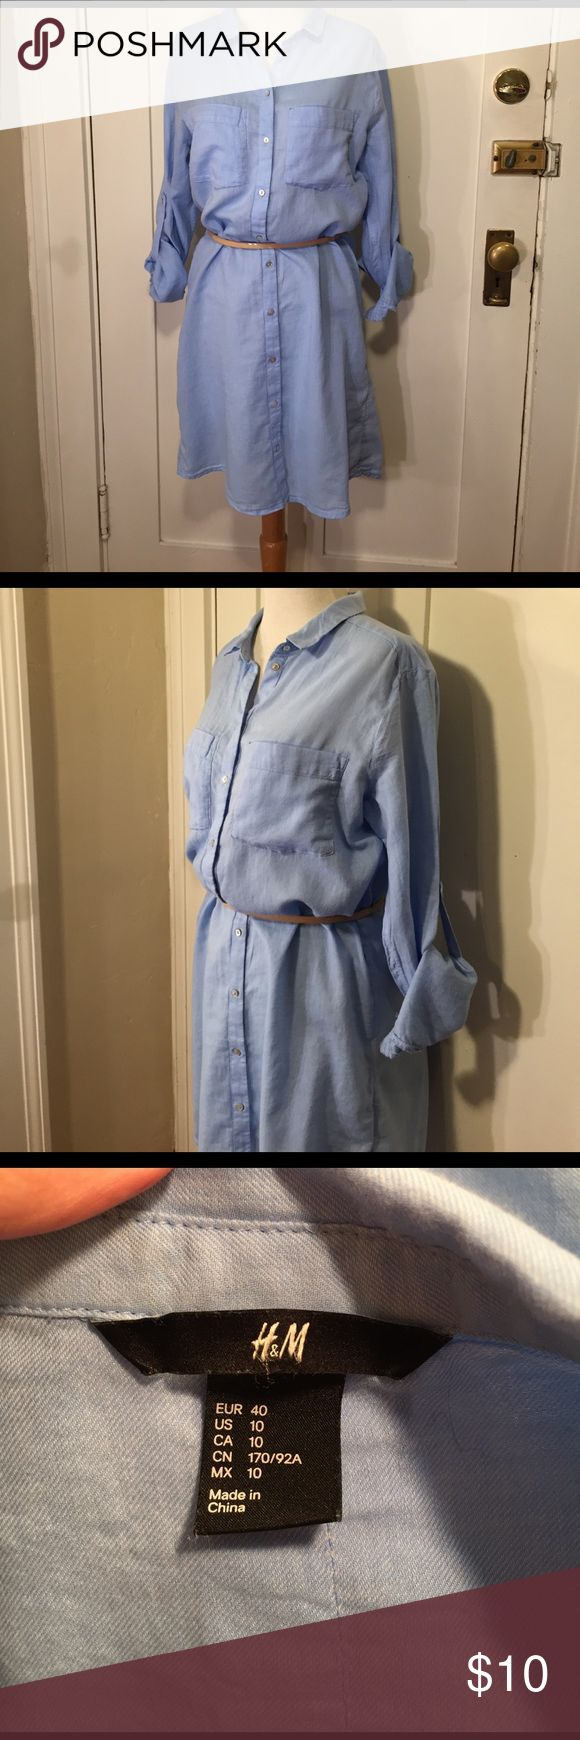 H&M light blue shirt dress Roll sleeves This is a cute light weight light blue shirt dress from H&M, belt loops, does not include belt, rolled sleeves, two front breast pockets, button-down front. See pictures for details. Good condition minor wear. Be sure and check the other items in closet and bundle to receive discounts. H&M Dresses